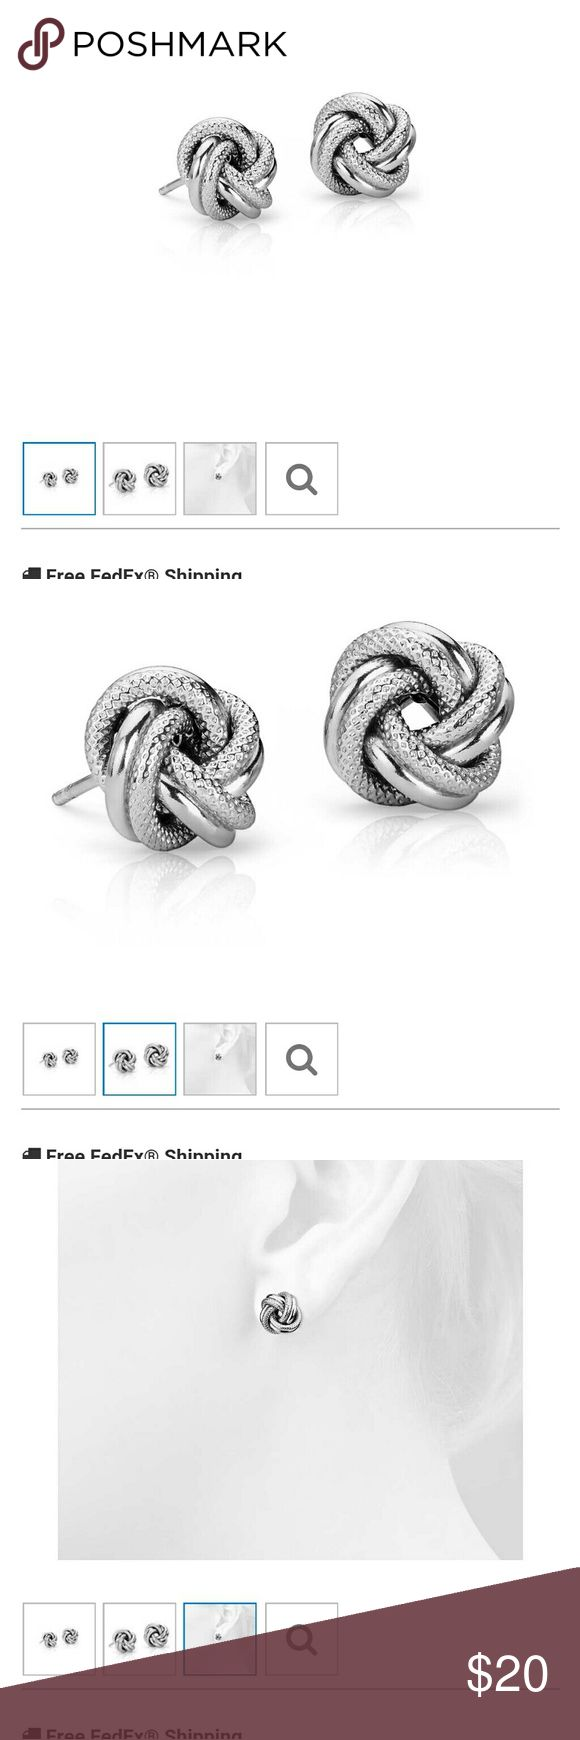 Blue Nile Interlace Love knot earrings in SS Metal	Sterling Silver? Diameter?	3/8 inch Backing	Push backing? Approximate weight	1.8 grams Rhodium Plated?	Yes  Never worn. Includes Blue Nile pouch and box. Blue Nile Jewelry Earrings